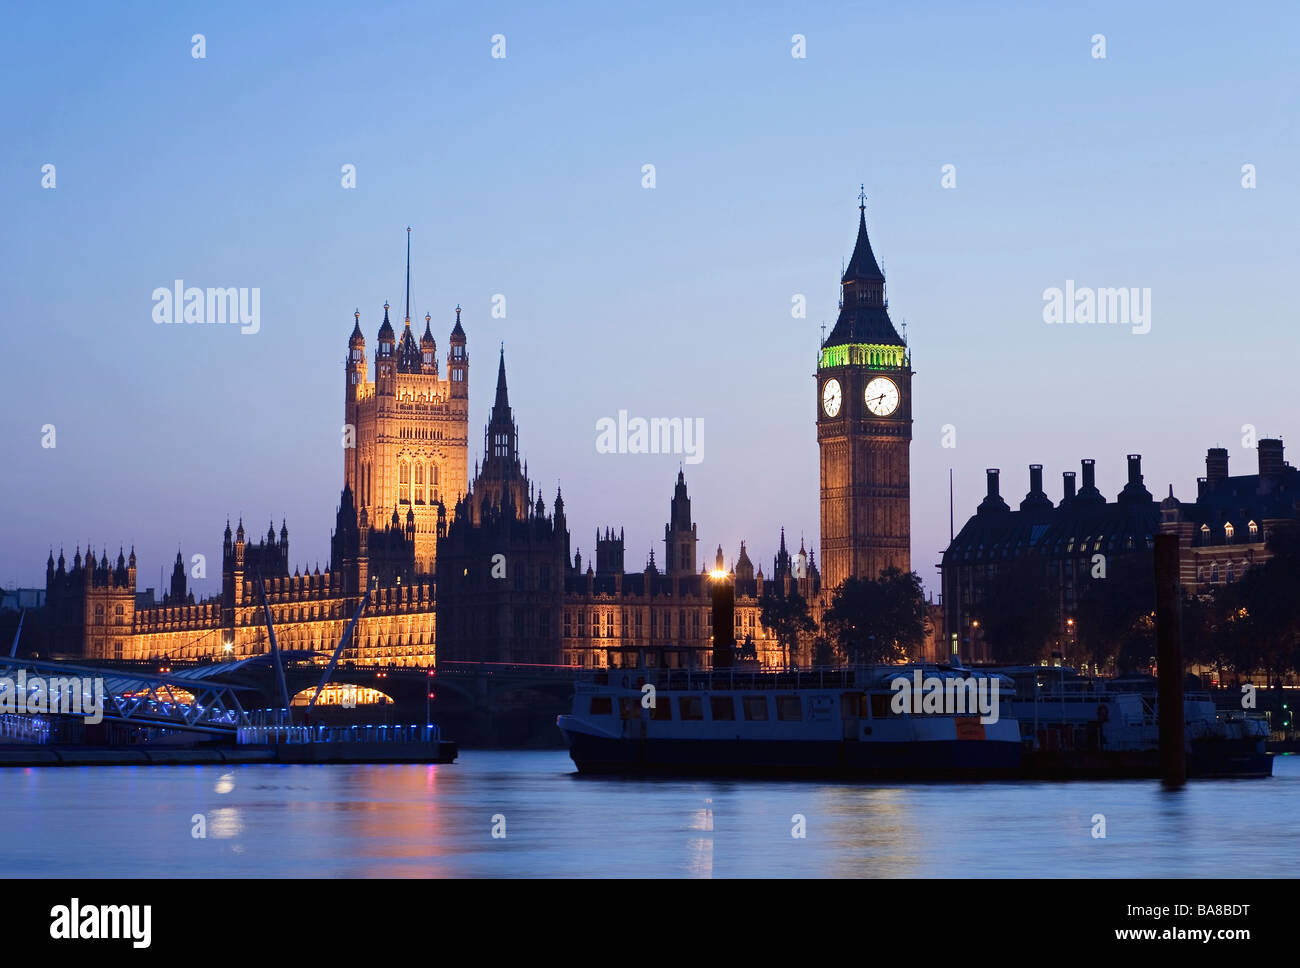 Houses of Parliament, Thames River, London, UK. sunset Stock Photo